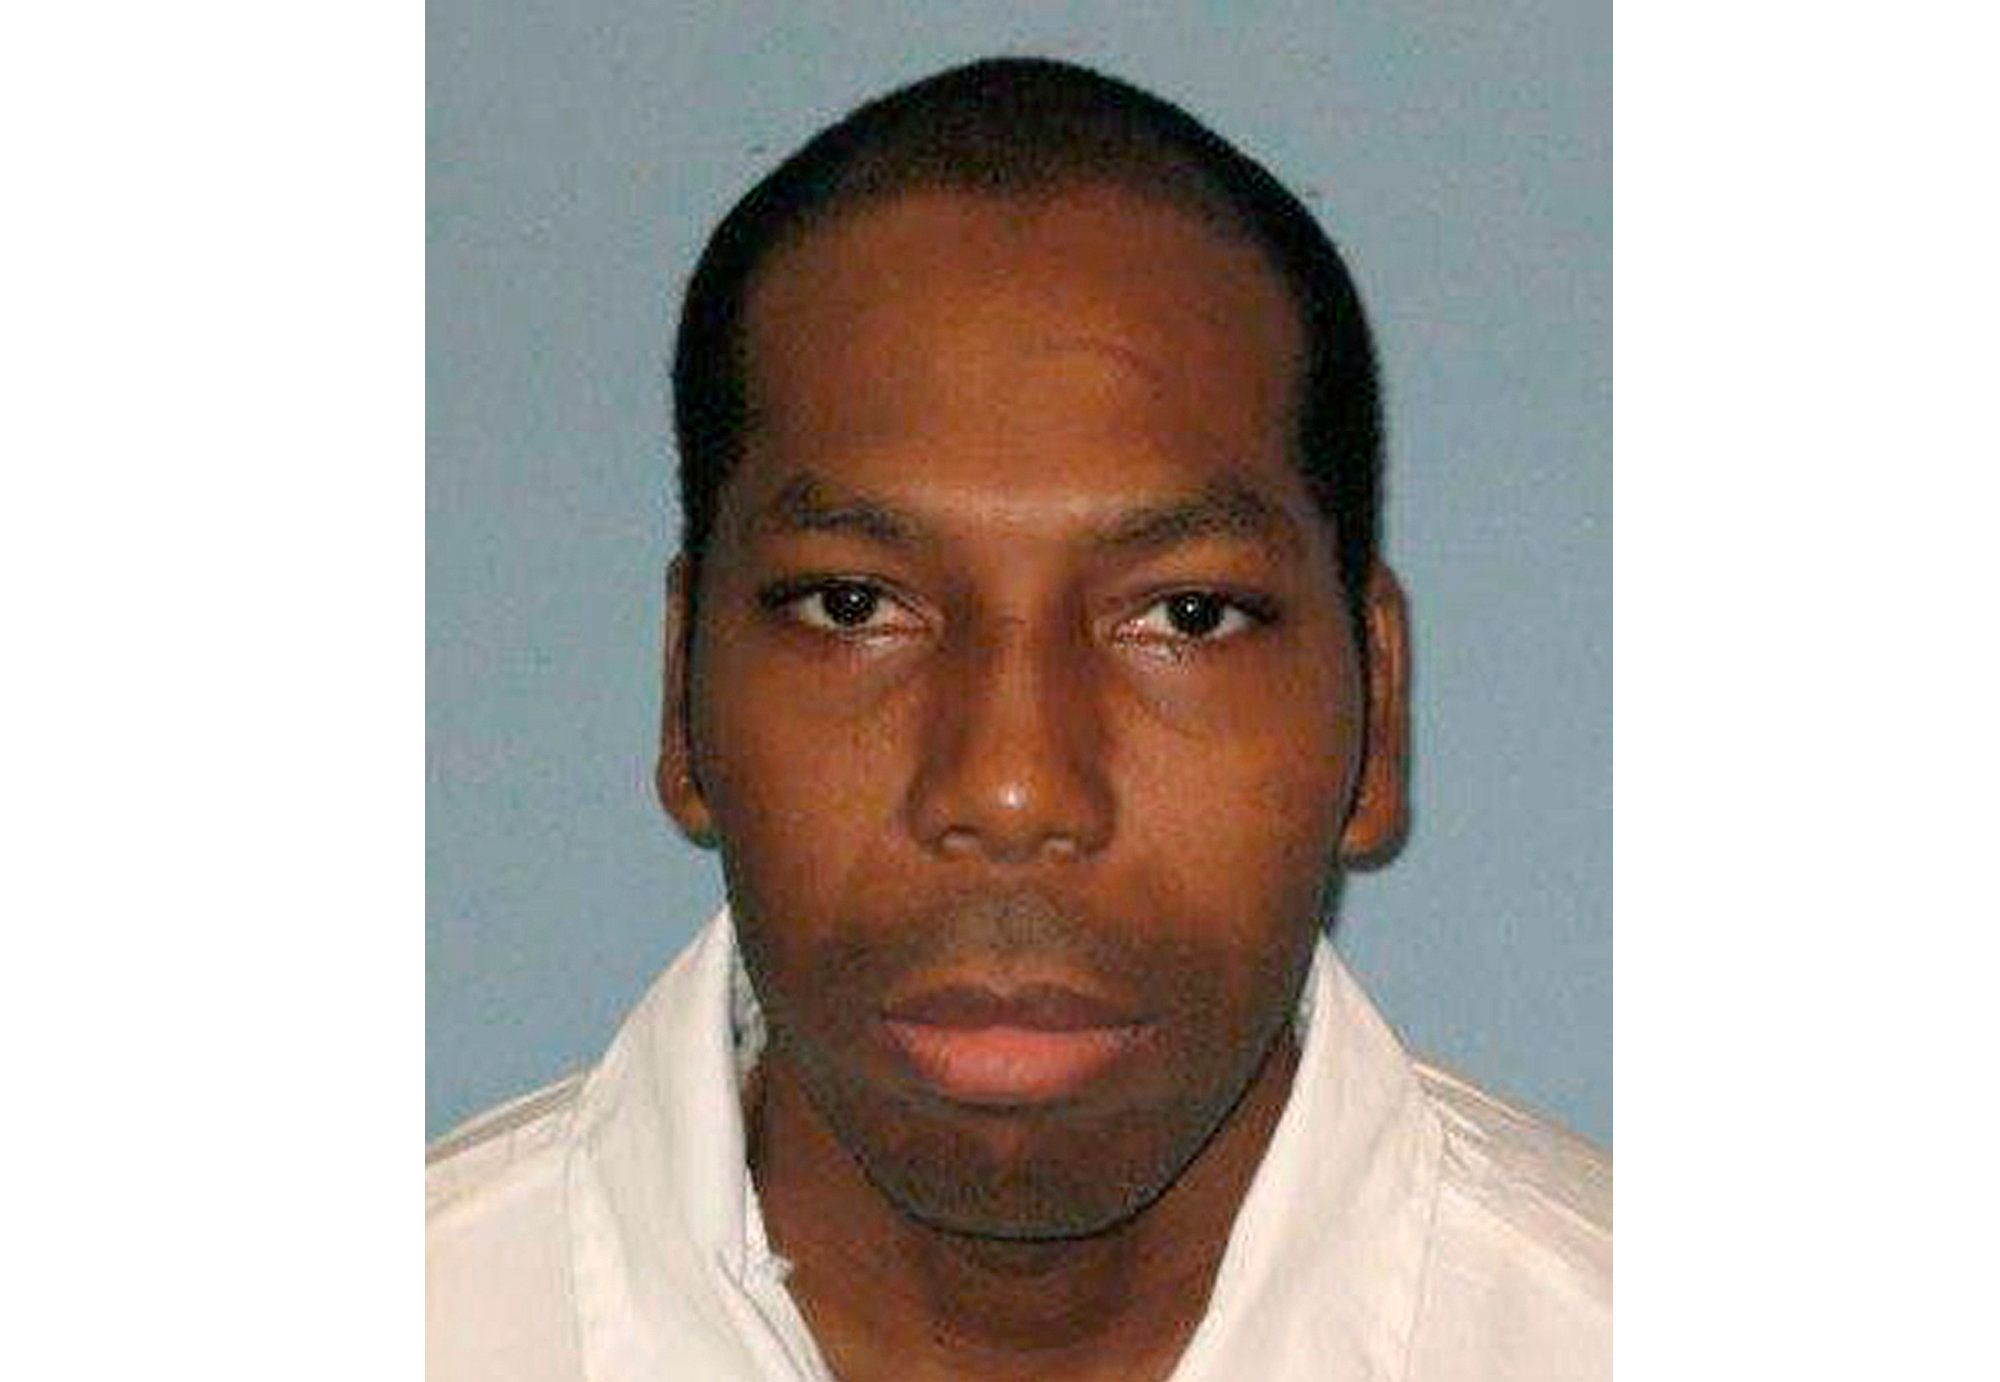 Alabama asks US Supreme Court to execute death row inmate Dominique Ray